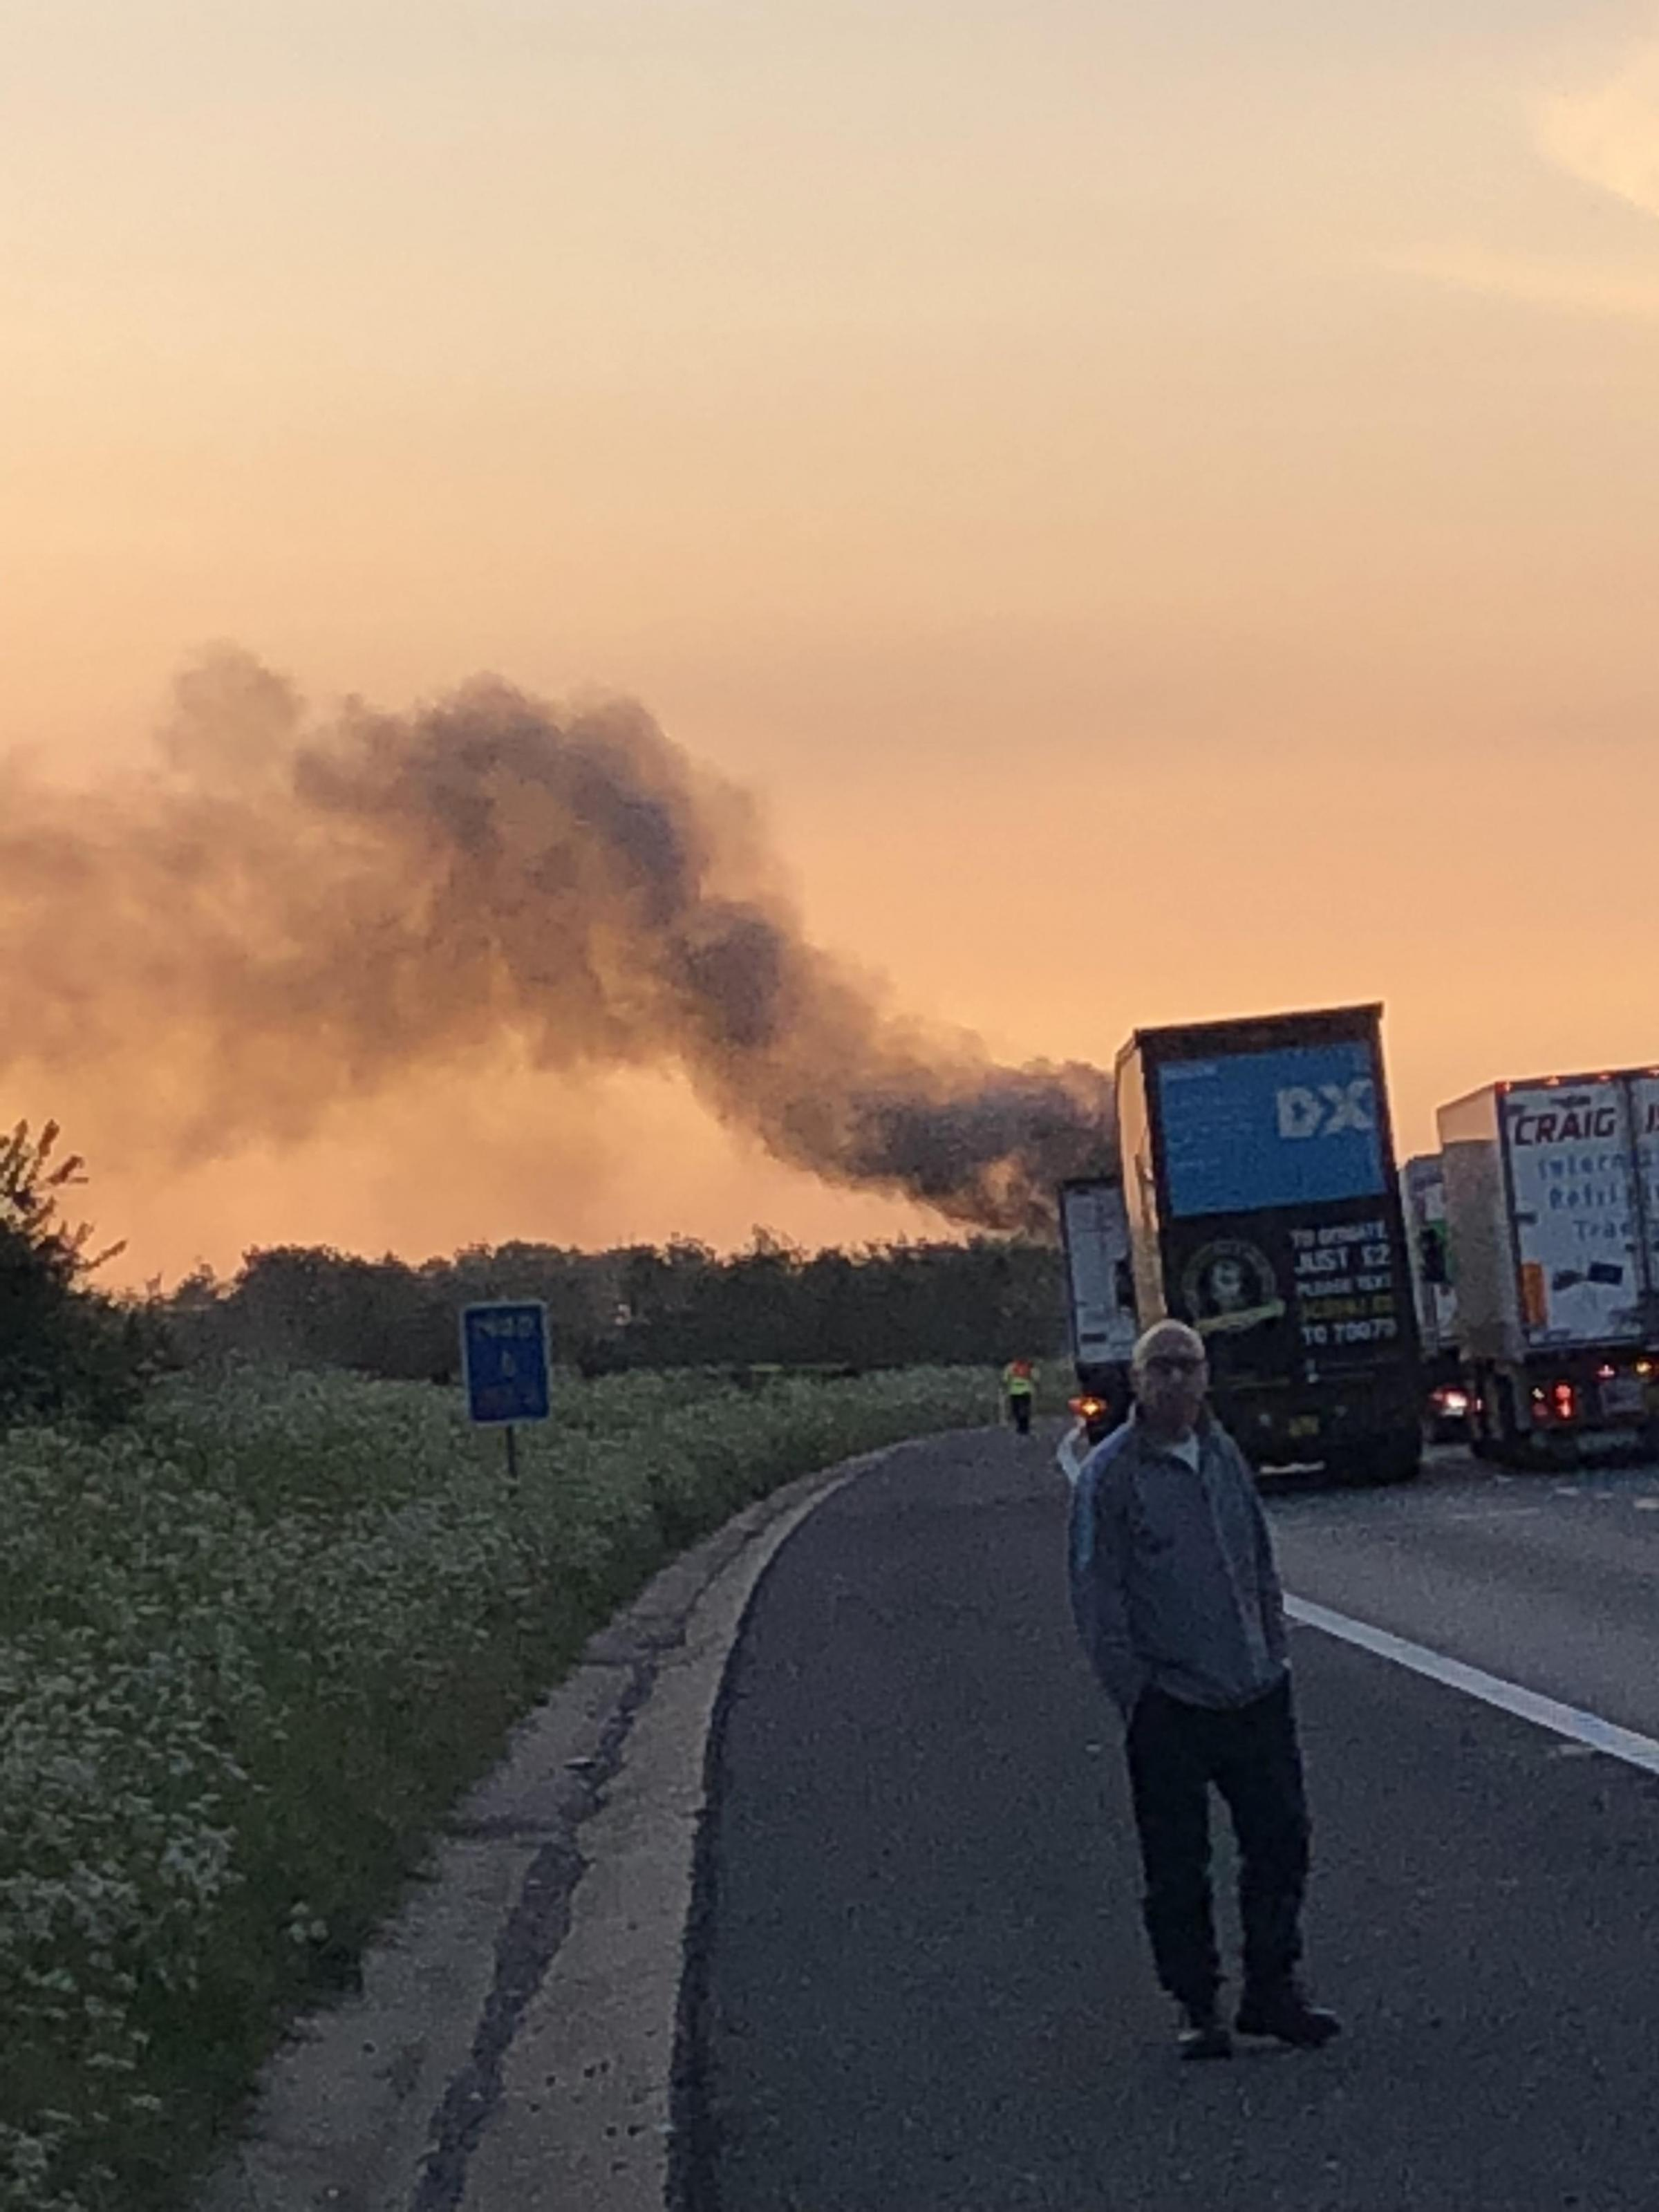 Kudrat Ali at the side of the road with the HGV fire in the background